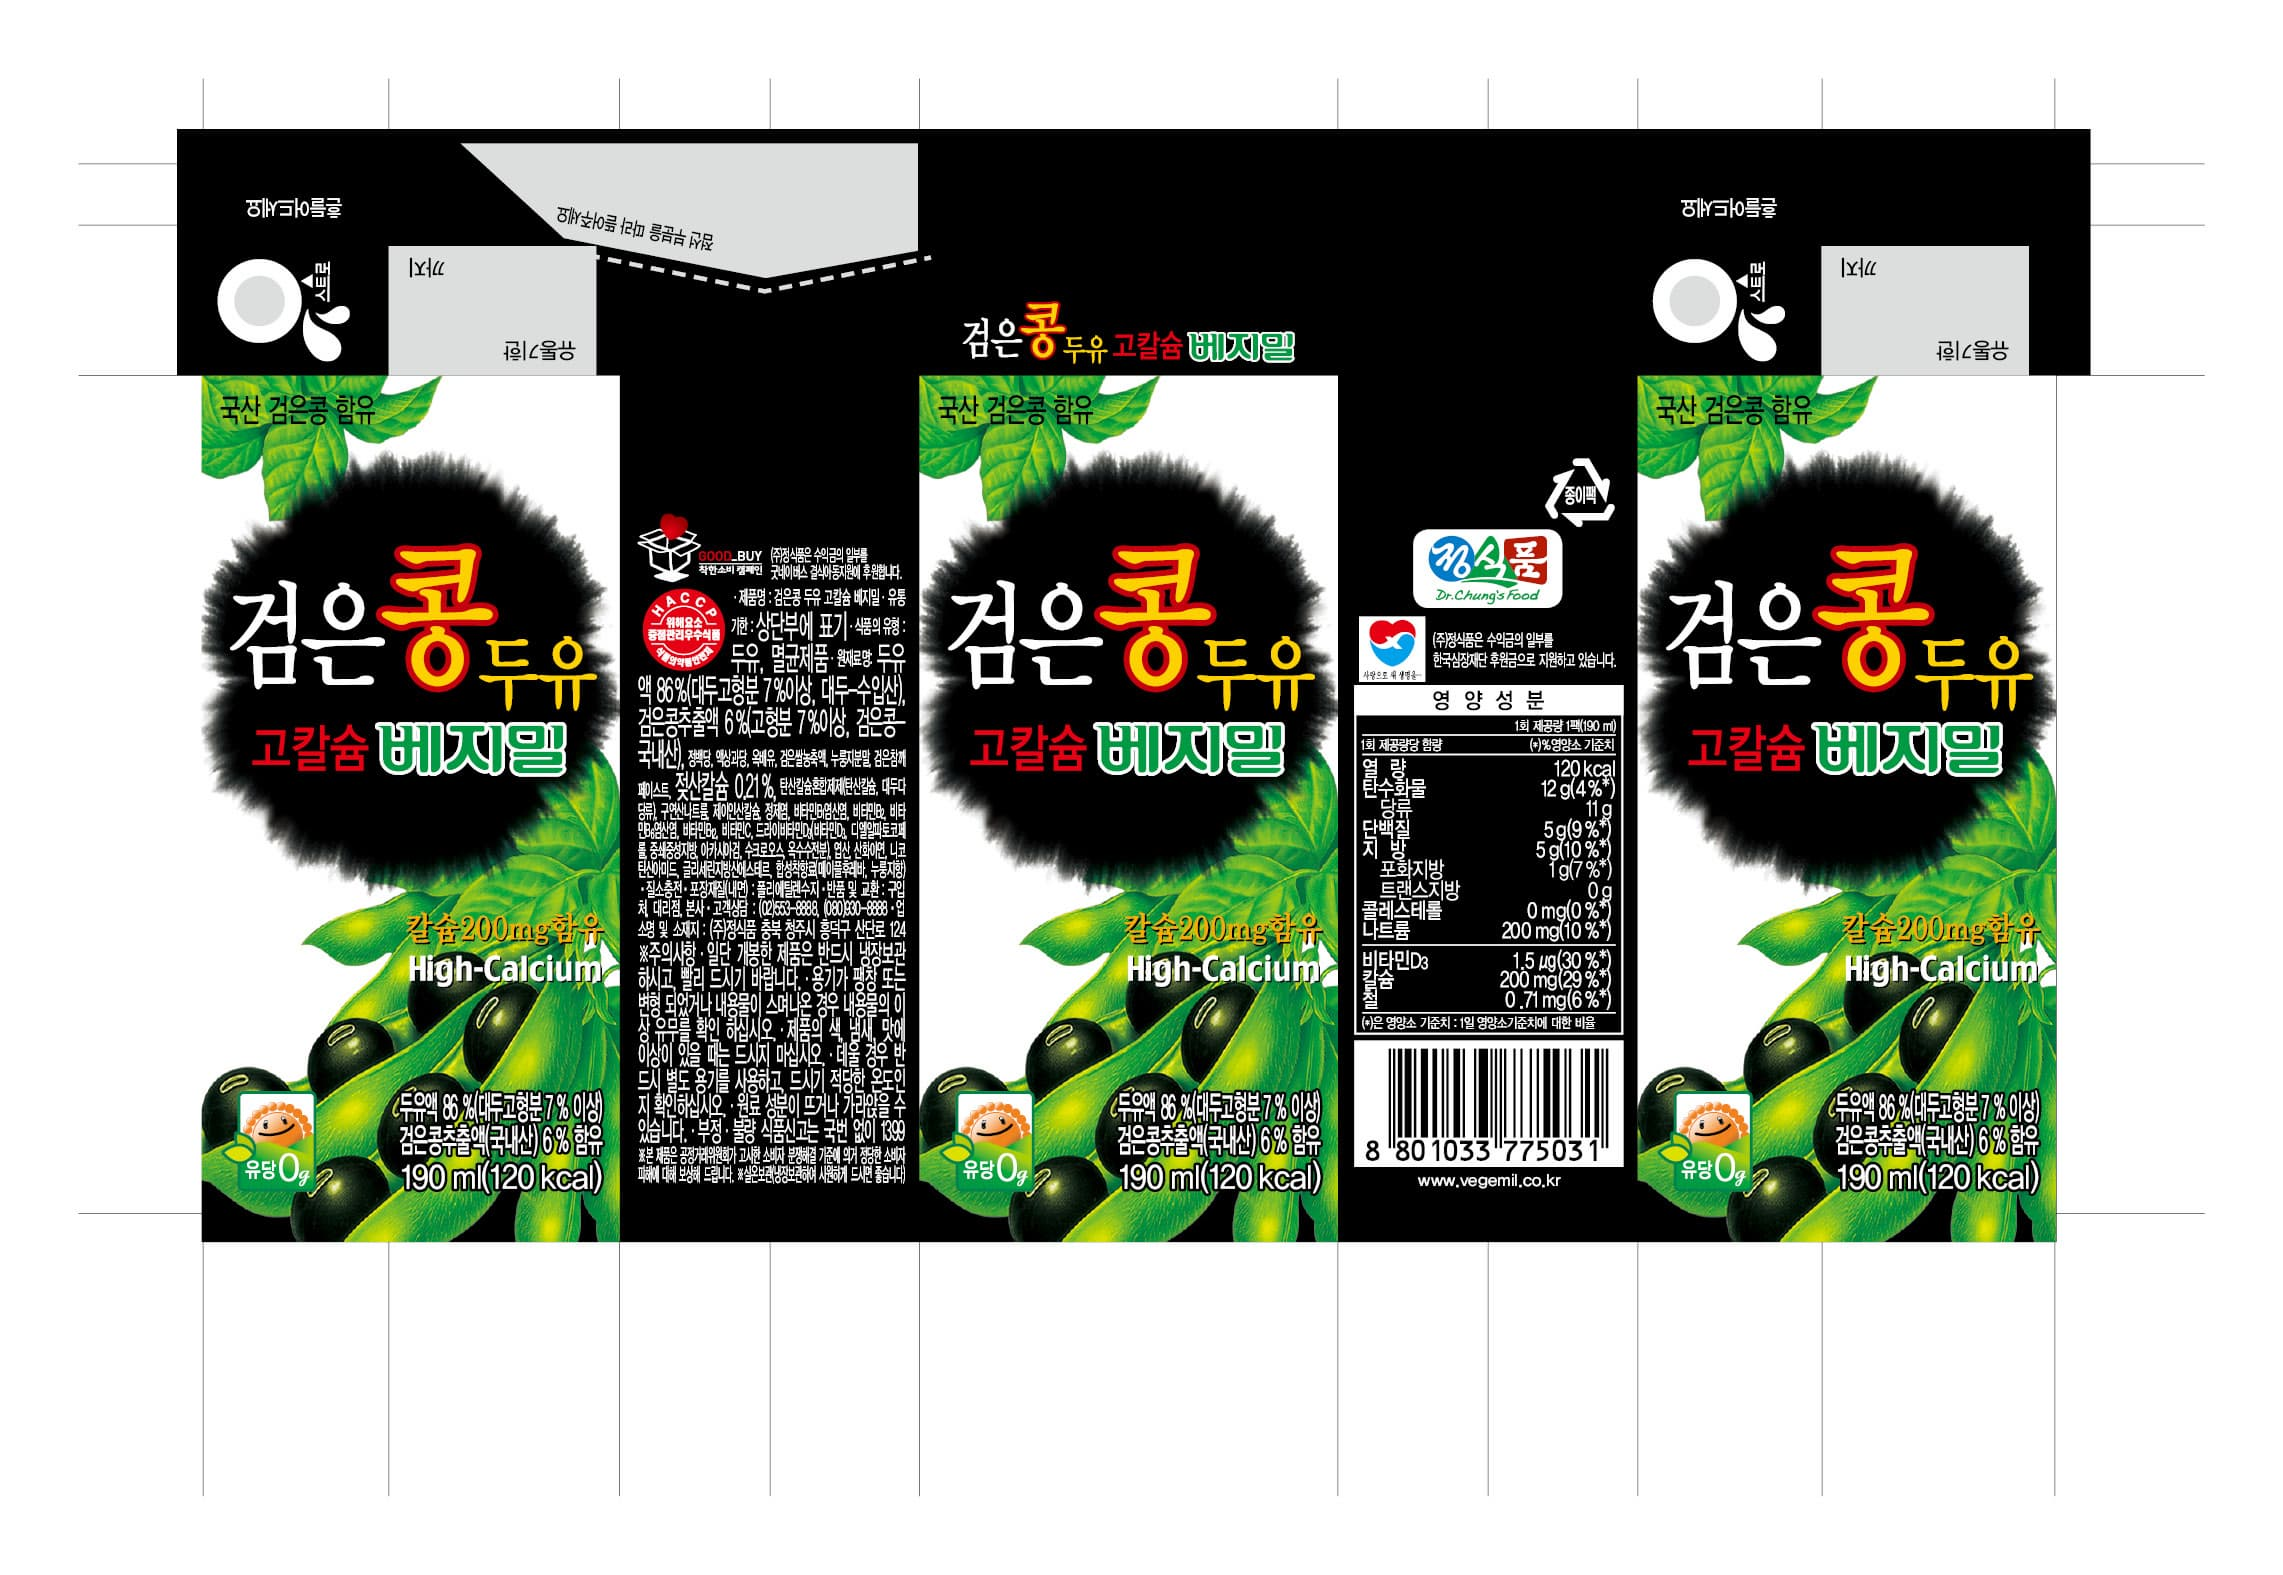 VEGEMIL BLACKBEAN HIGH CALCIUM SOYMILK